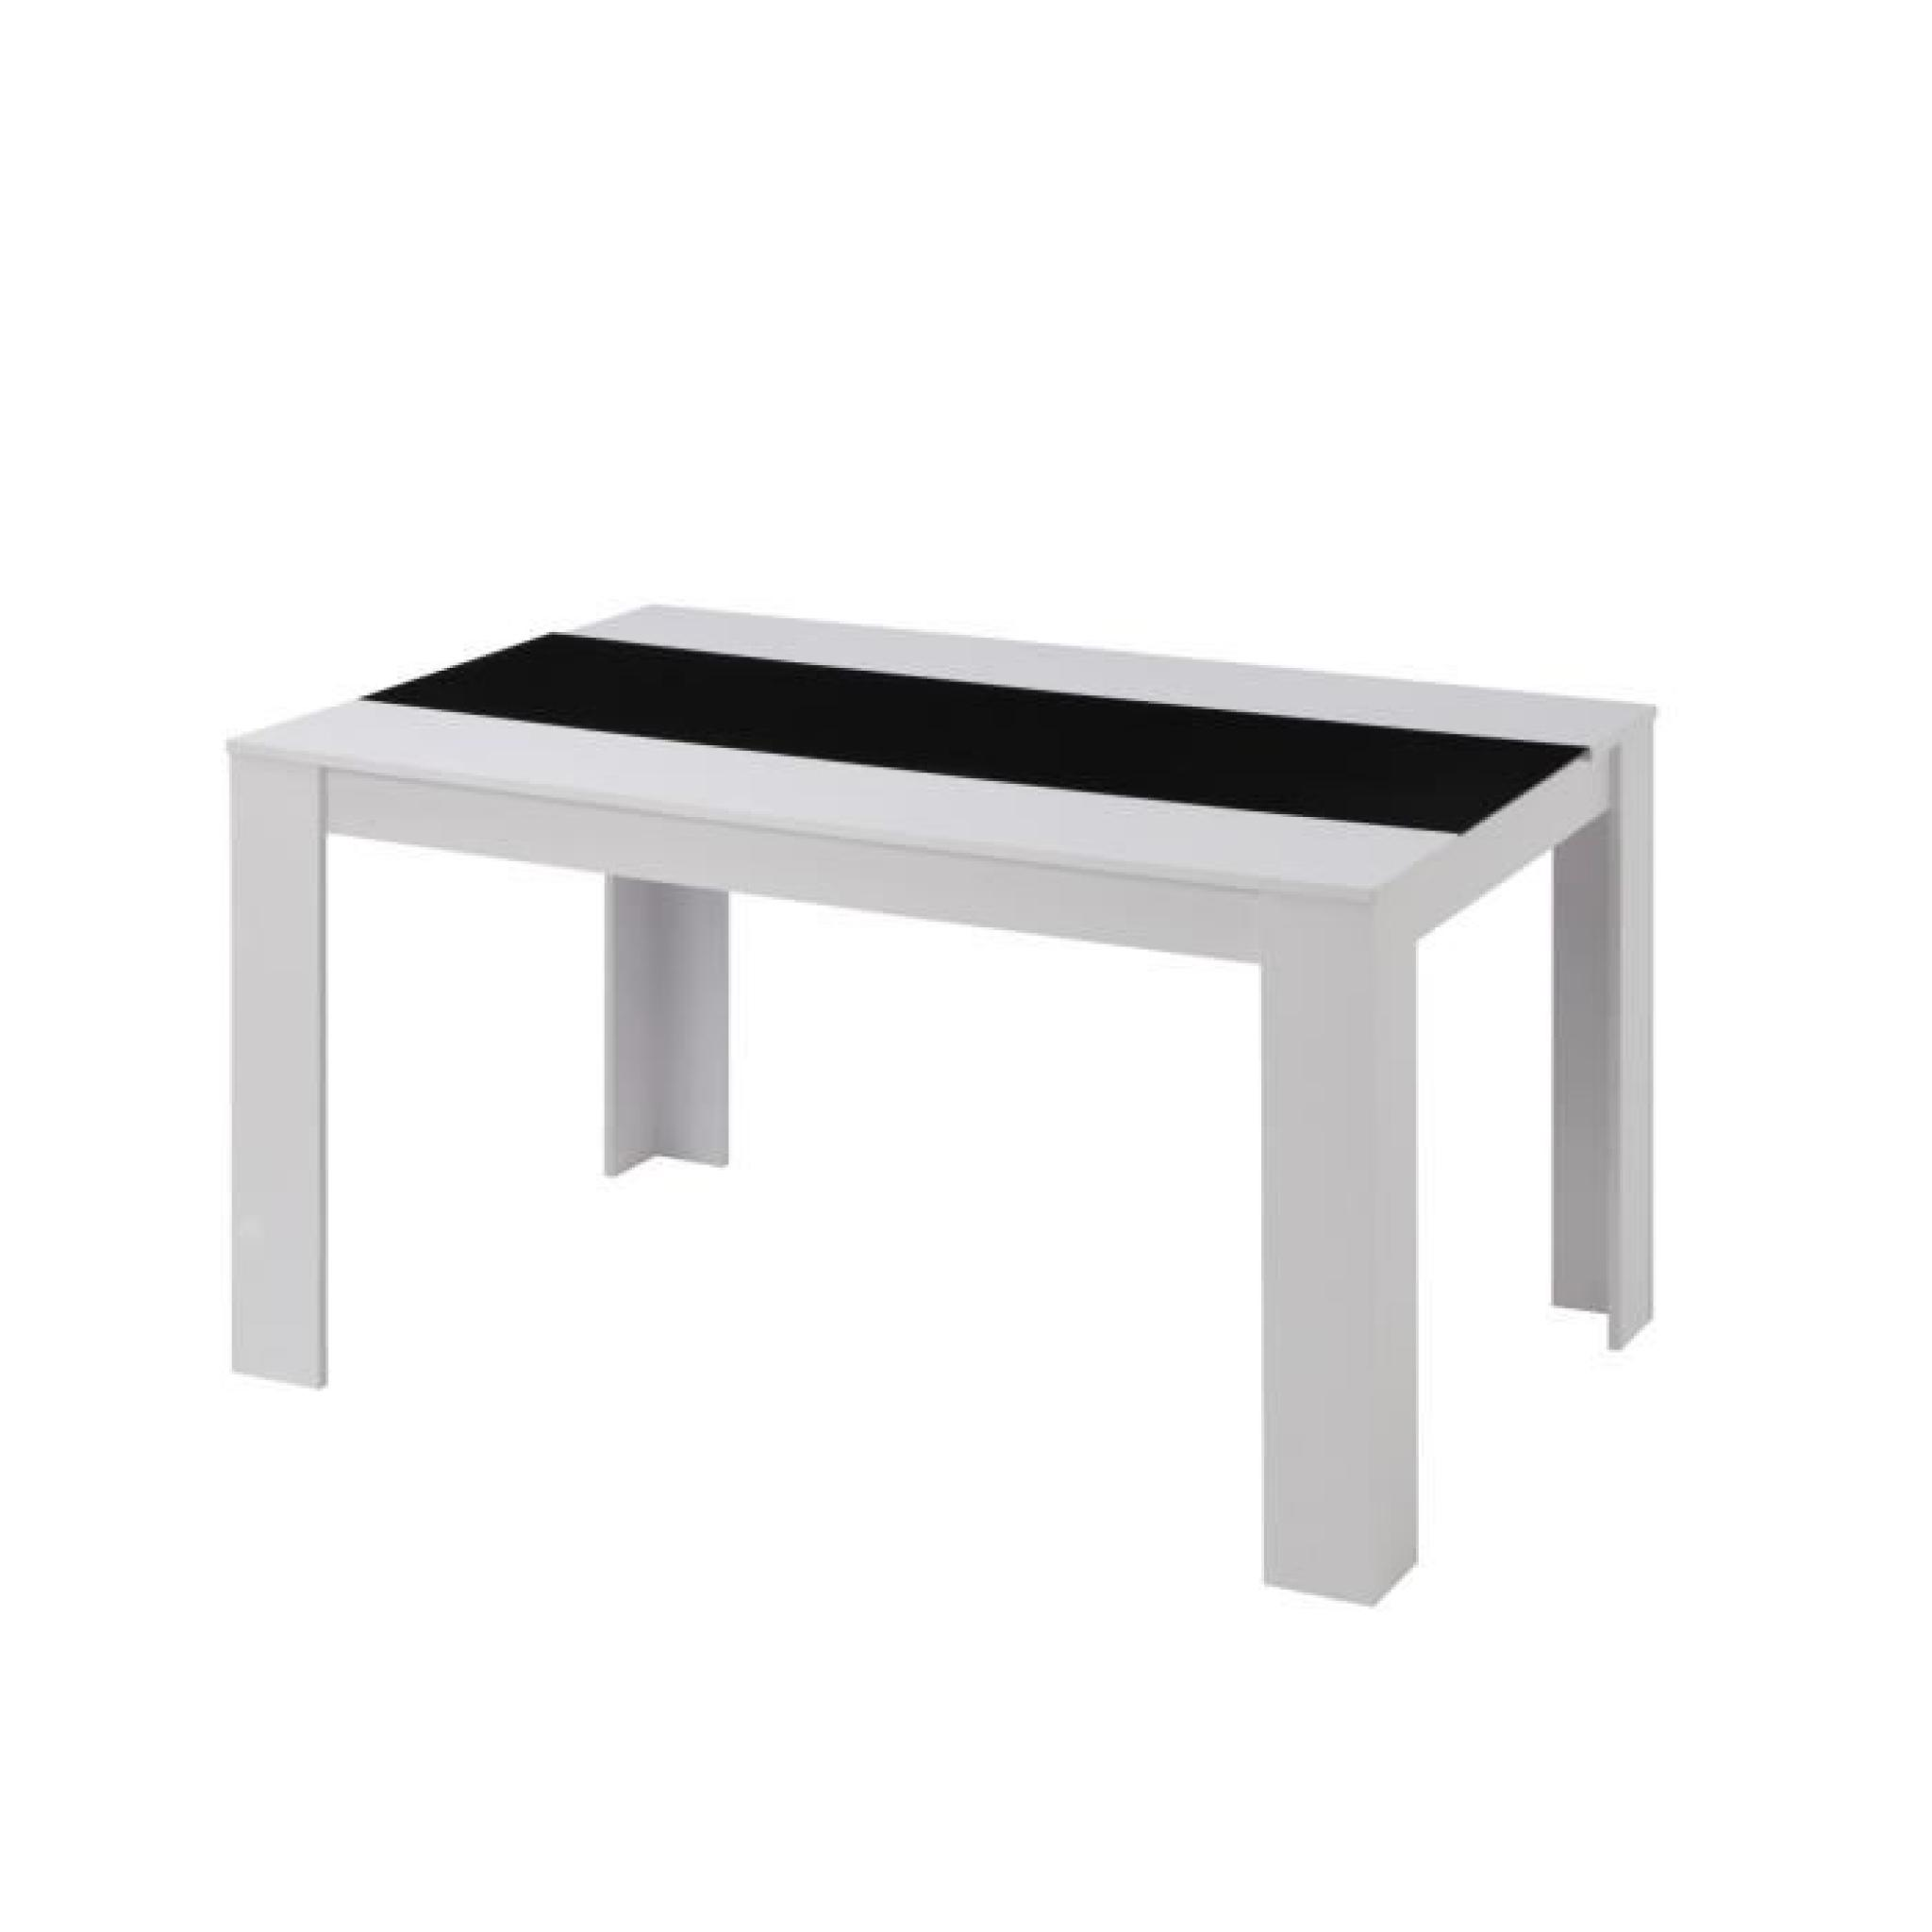 Damia table manger 140x90cm noir et blanc achat vente for Table a manger noir